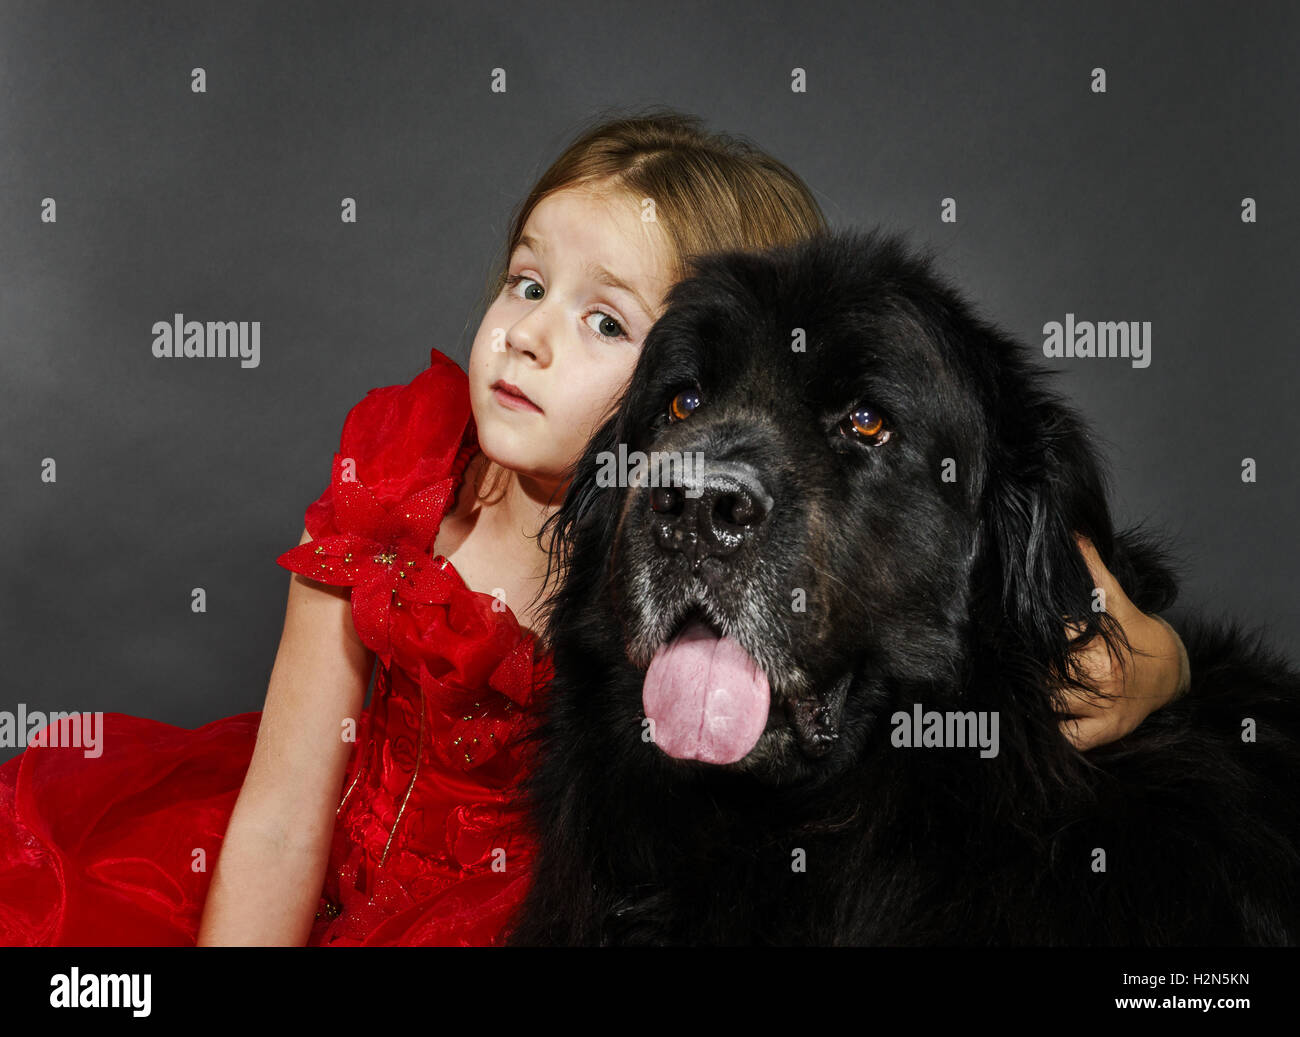 Beauty and the Beast. Little girl with big black water-dog portrait, isolated on grey - Stock Image